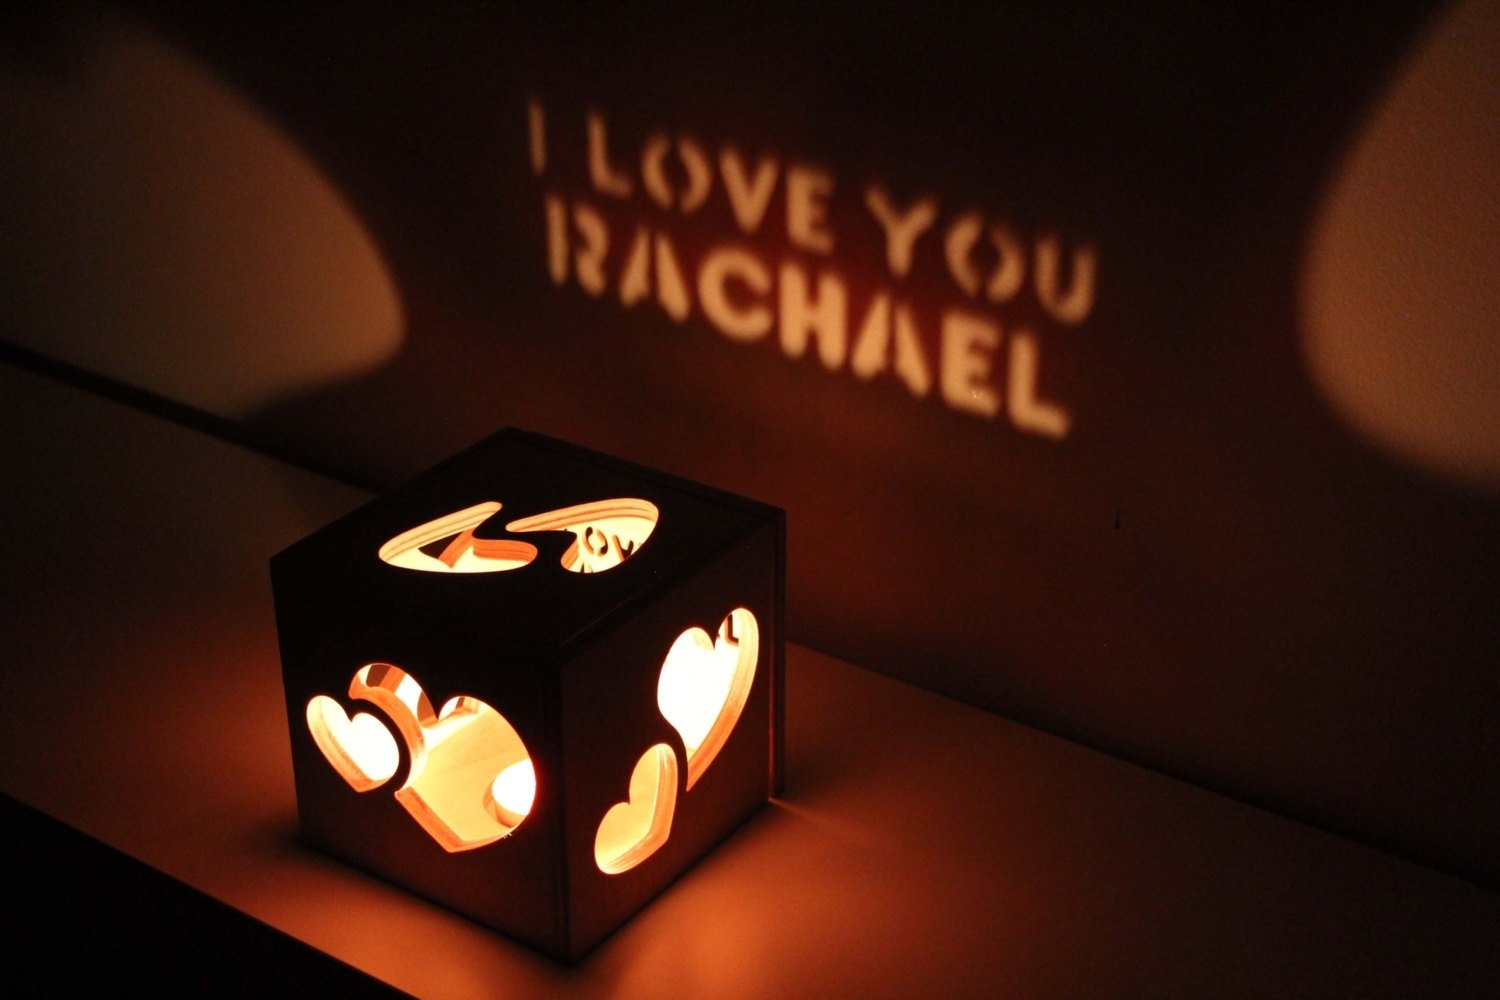 10 Cute Birthday Gift Ideas For Girlfriend diy gifts for girlfriend tumblr in snazzy diy cavity cake diy gifts 2020